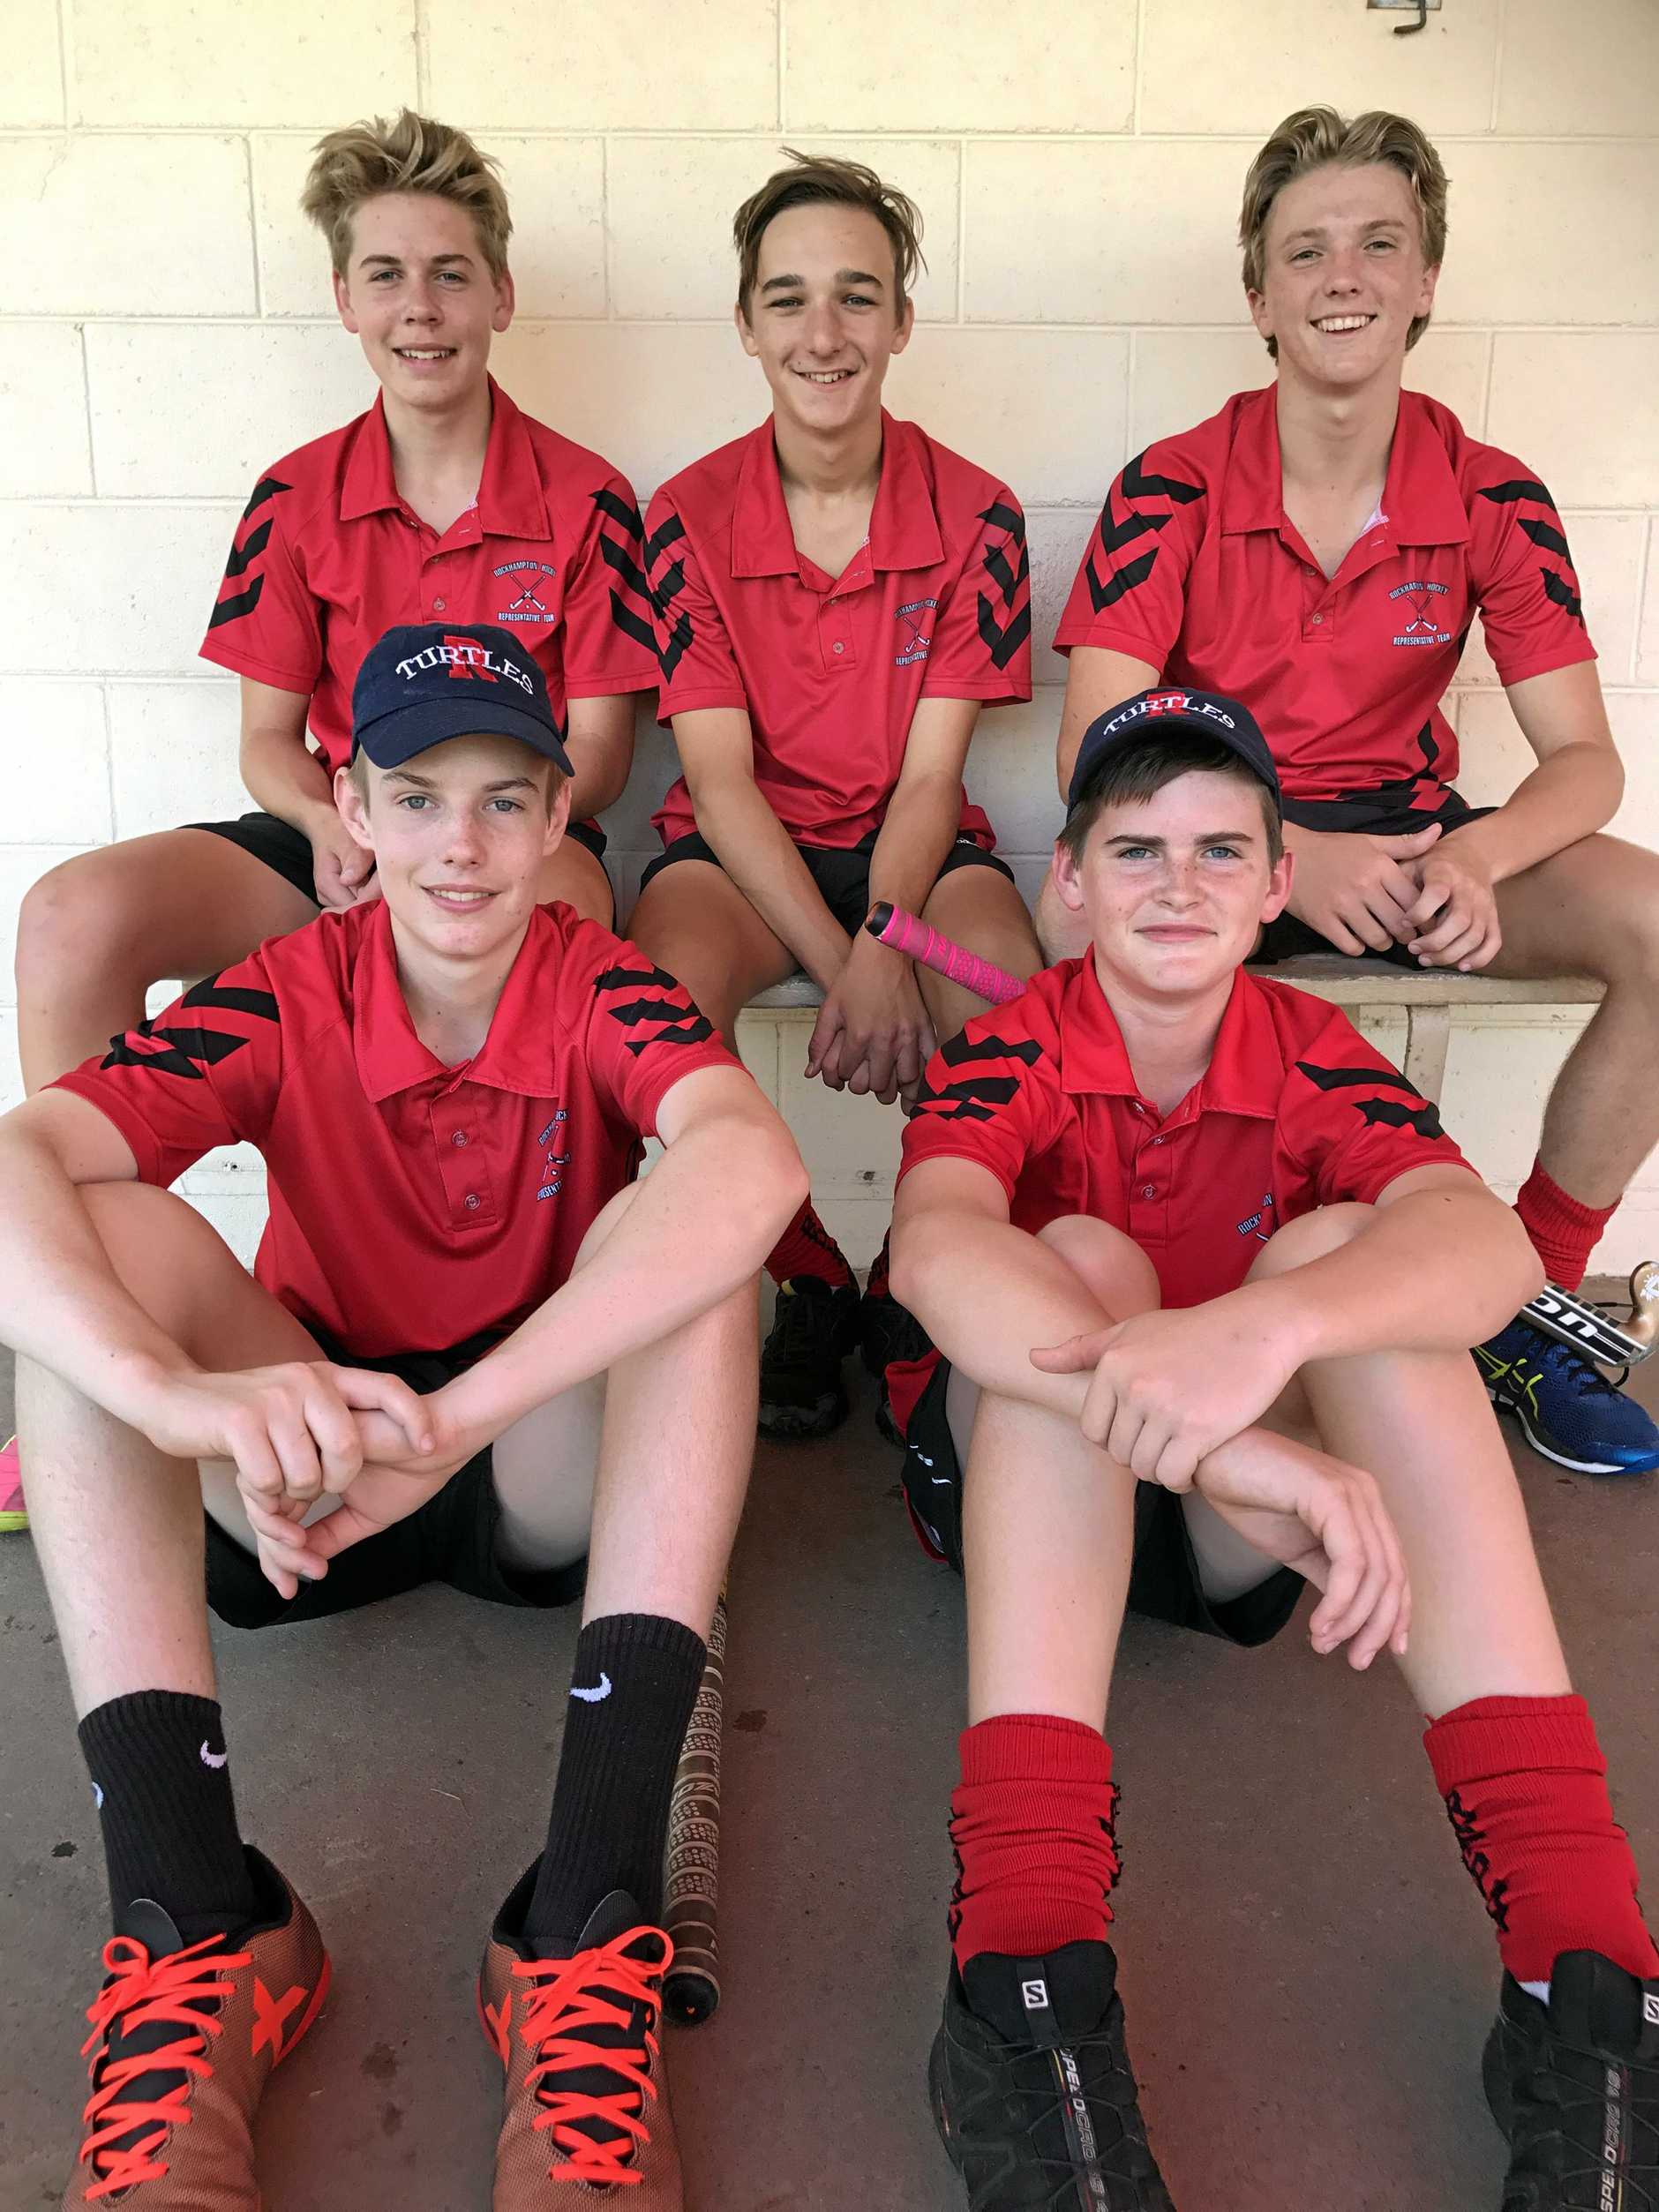 Members of the Rockhampton under-15 boys indoor hockey team (back row, from left) Riley O'Hanlon, Lachlan Plant, Sean McDonald, and (front row) Callum White and Dylan Quinlan. Absent are Nathan Moffatt, Hayden Pease and Will Howland.